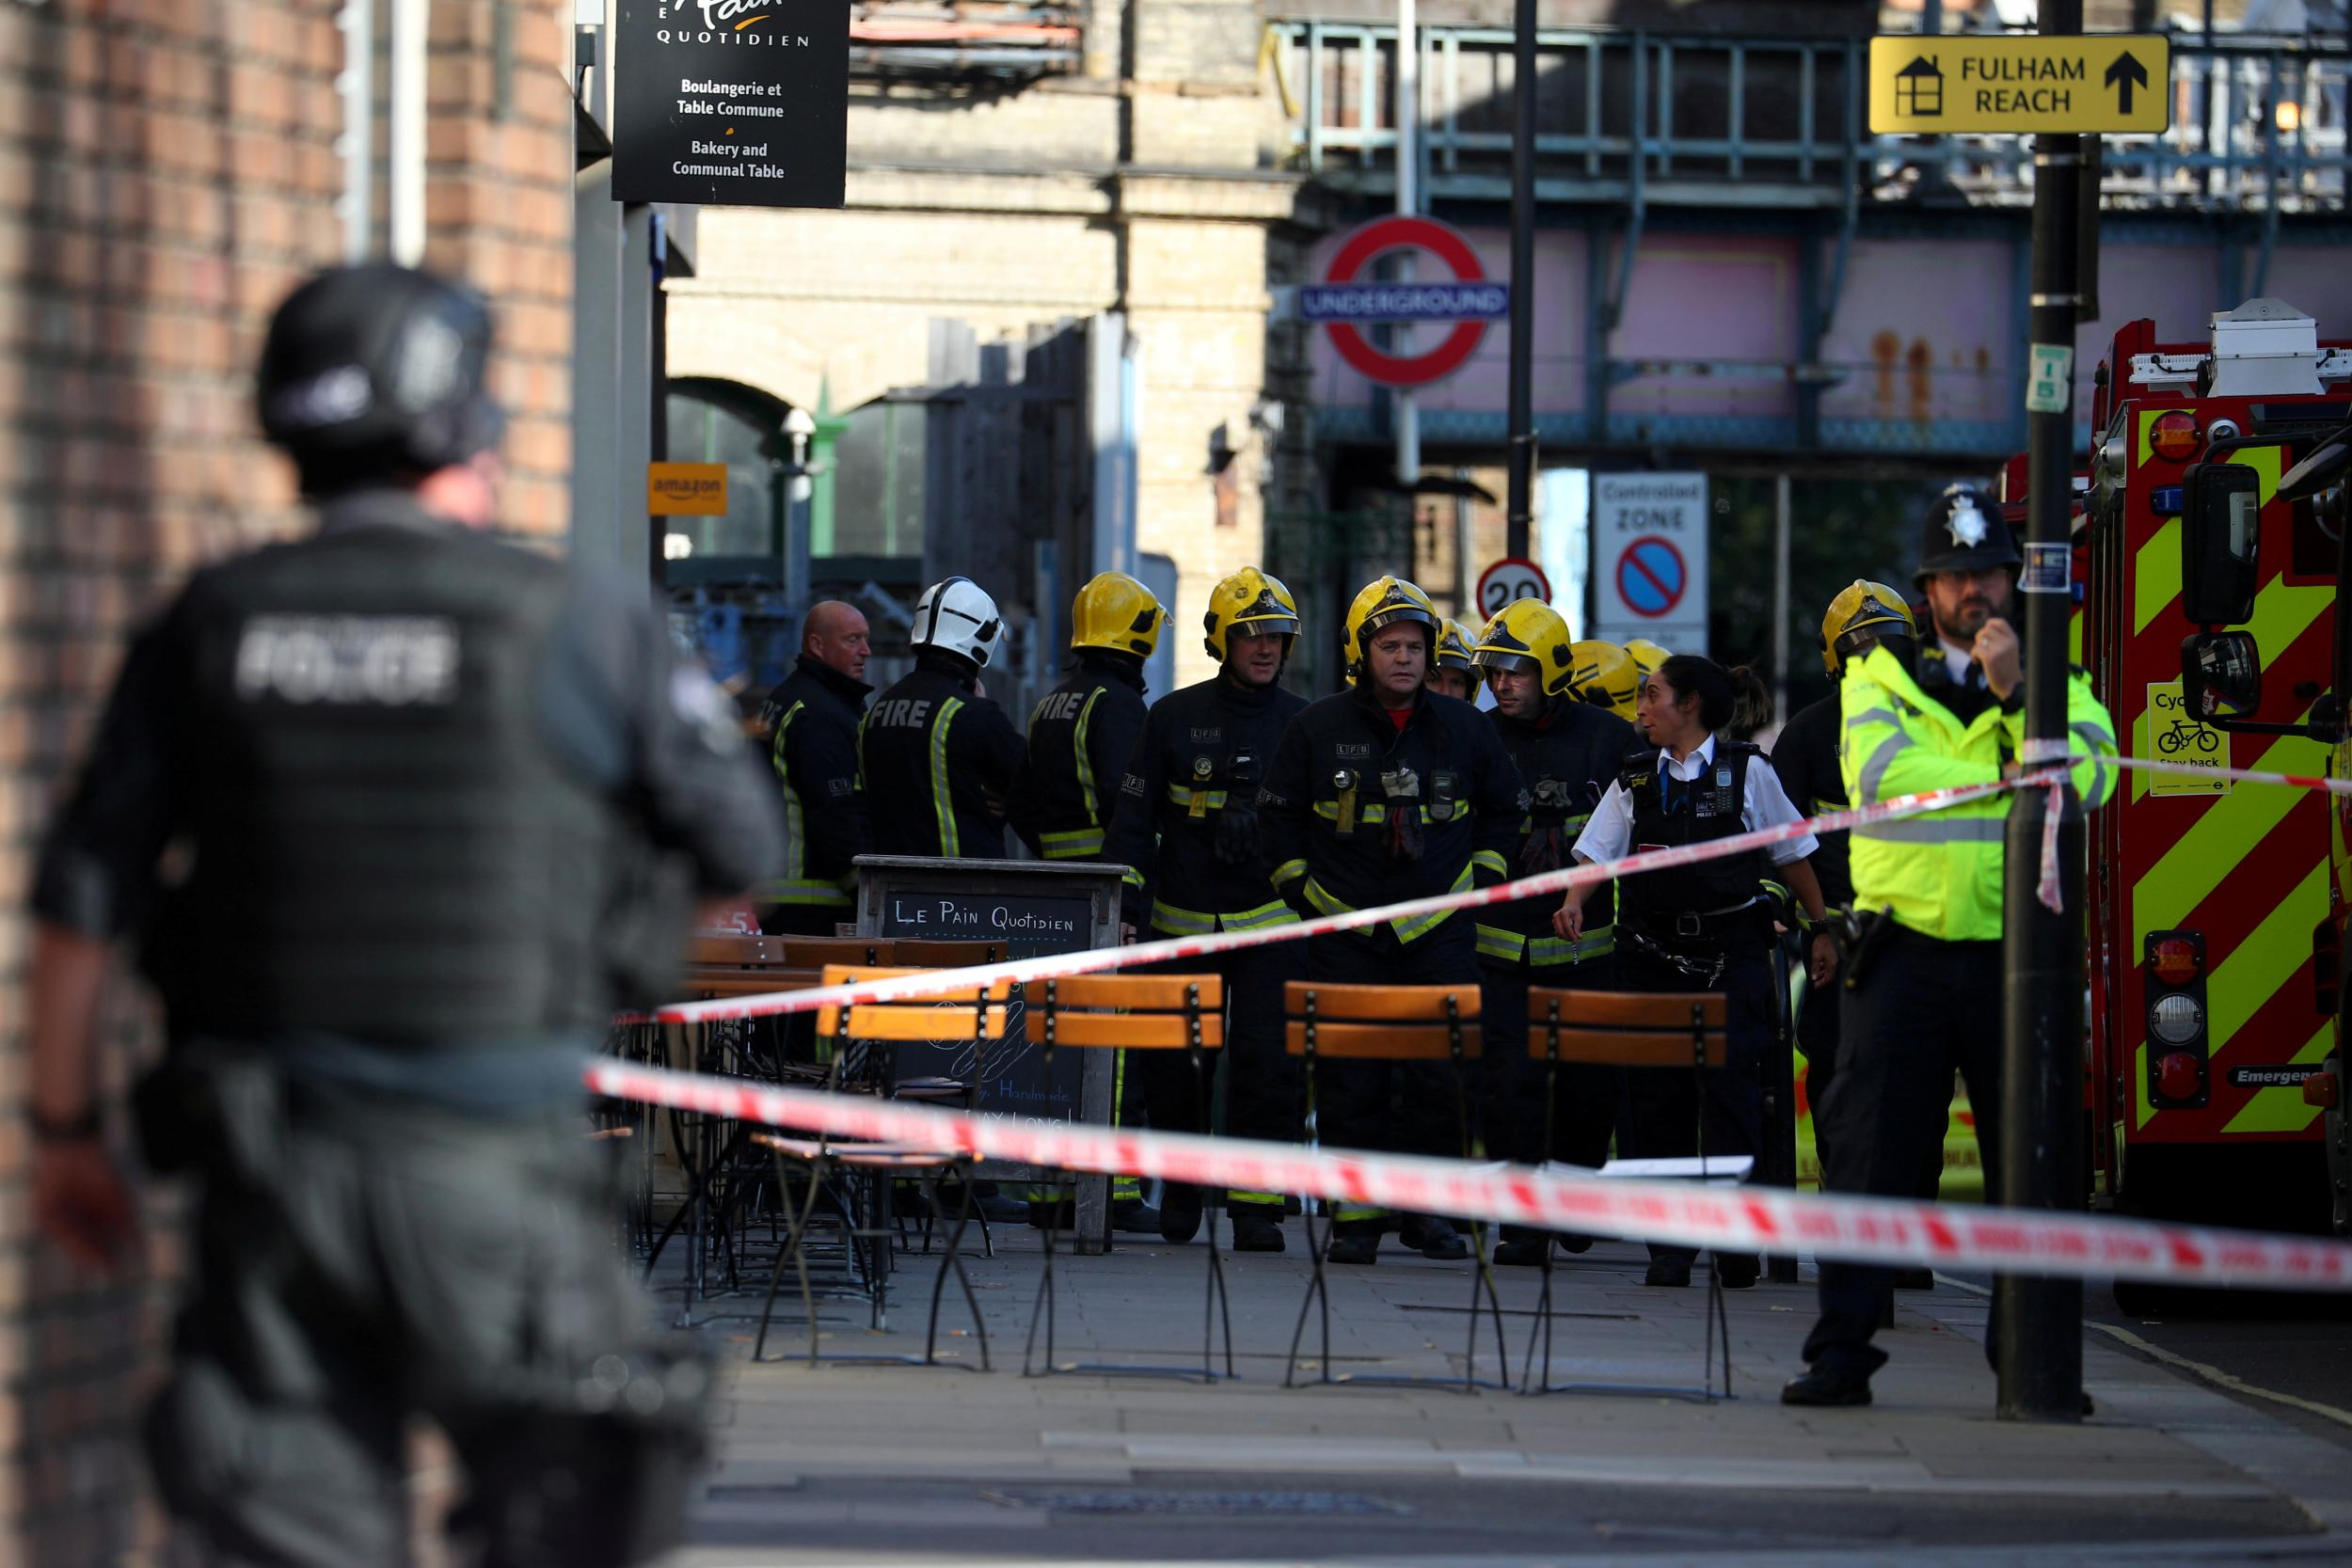 London attack: Parsons Green bomb contained 'mother of Satan' explosive used in Manchester bombing